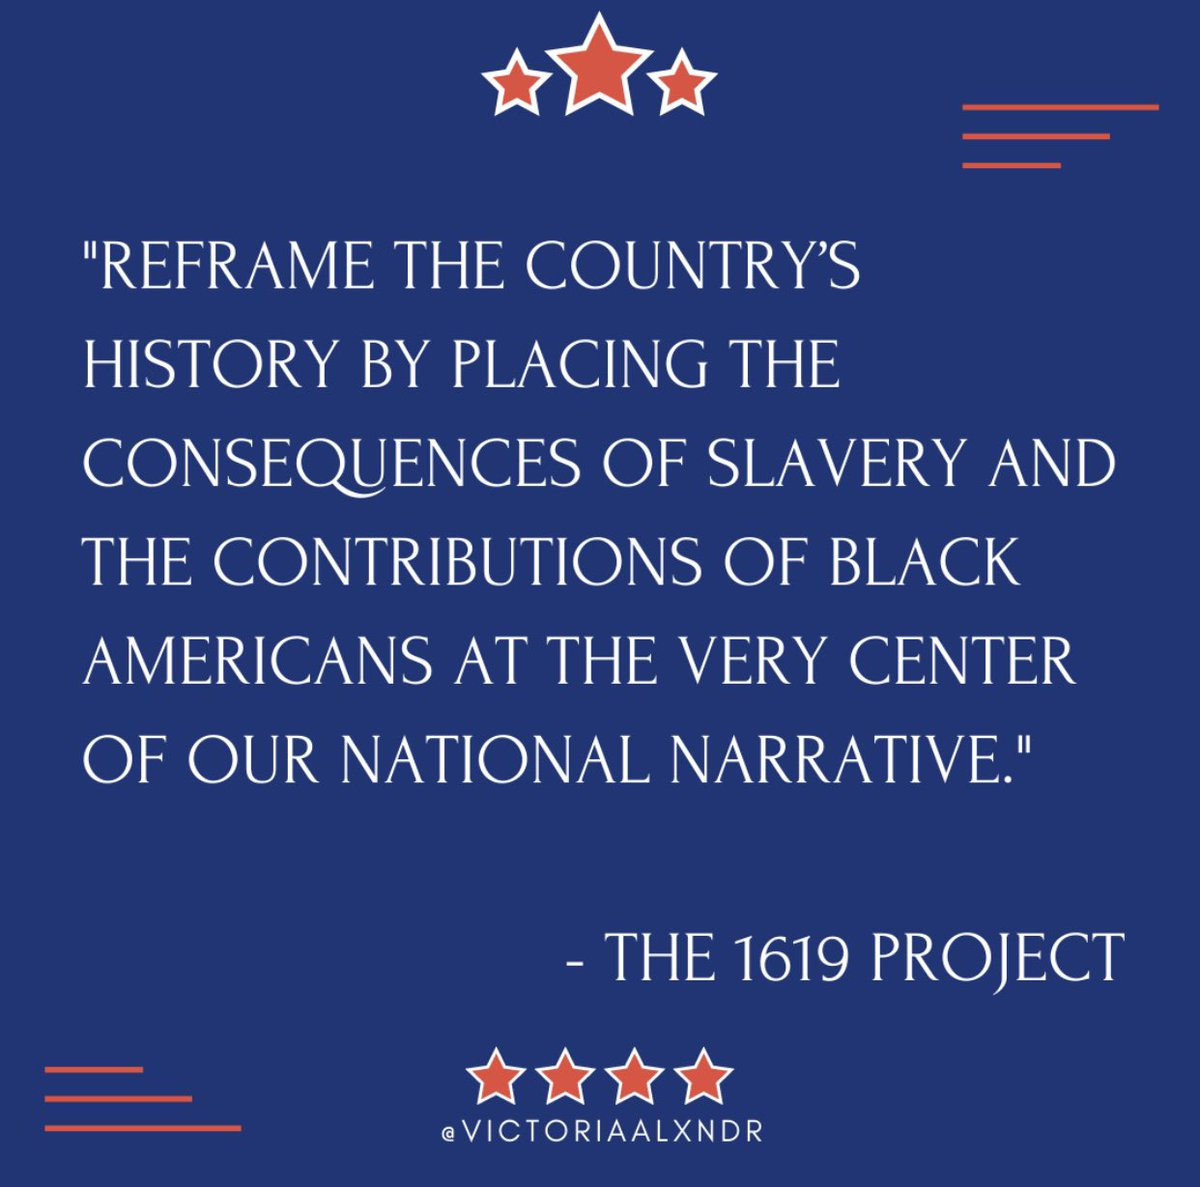 Reframe your 4th of July / Independence Day